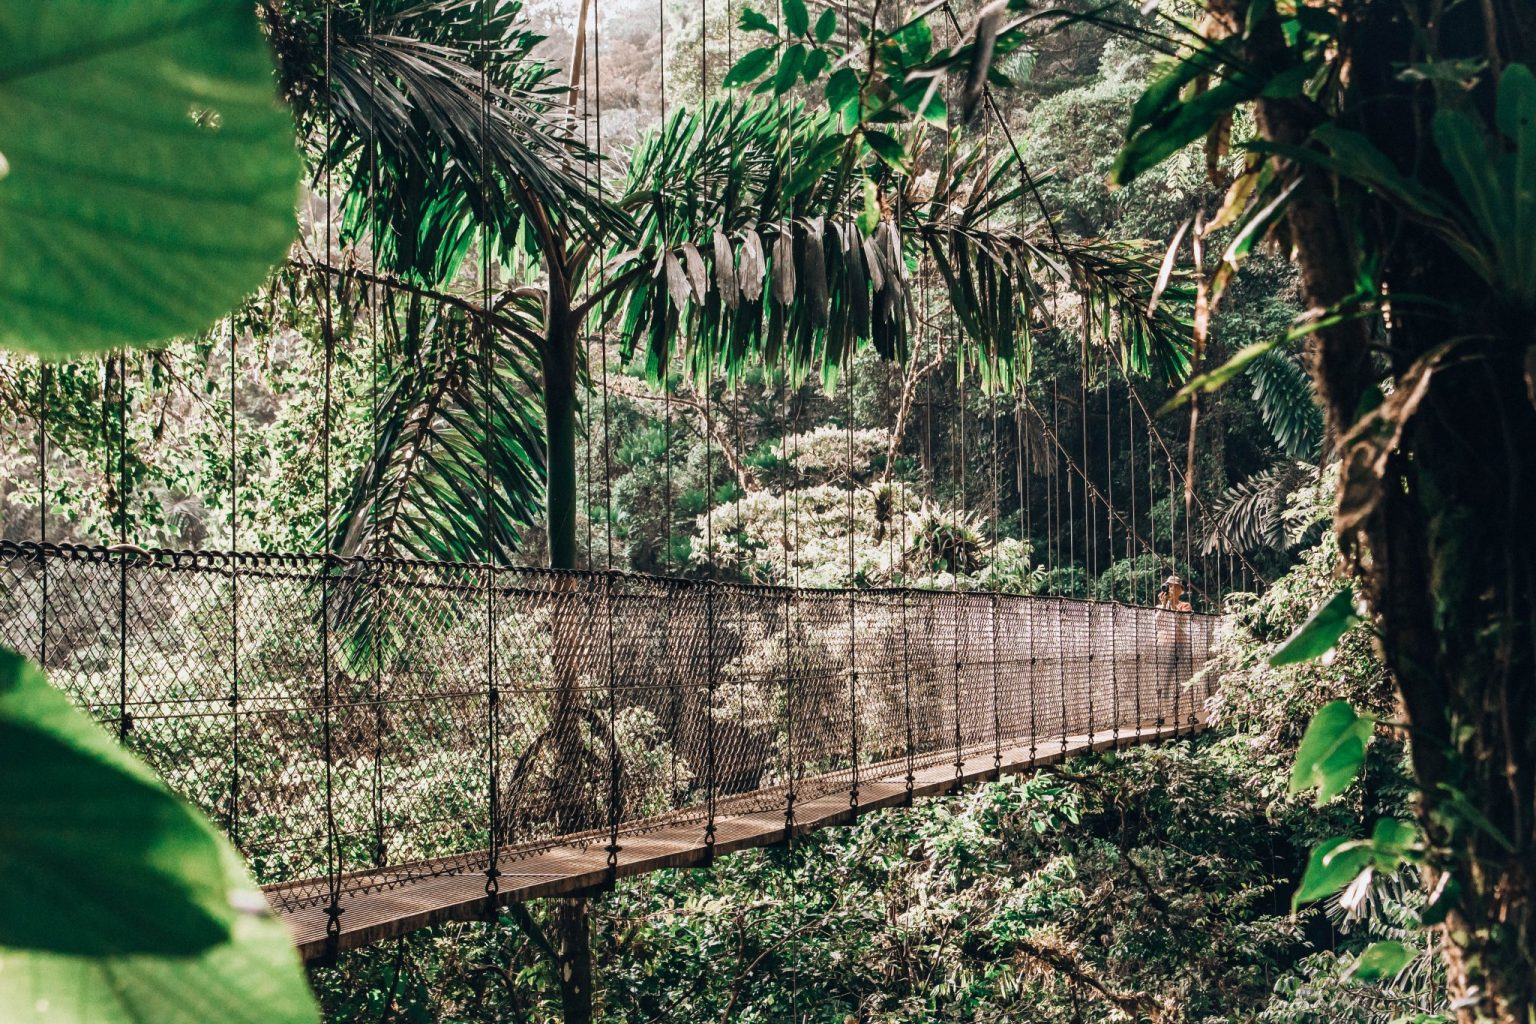 A visit to the Mistico Hanging Bridges is one of many things to do in Costa Rica with kids